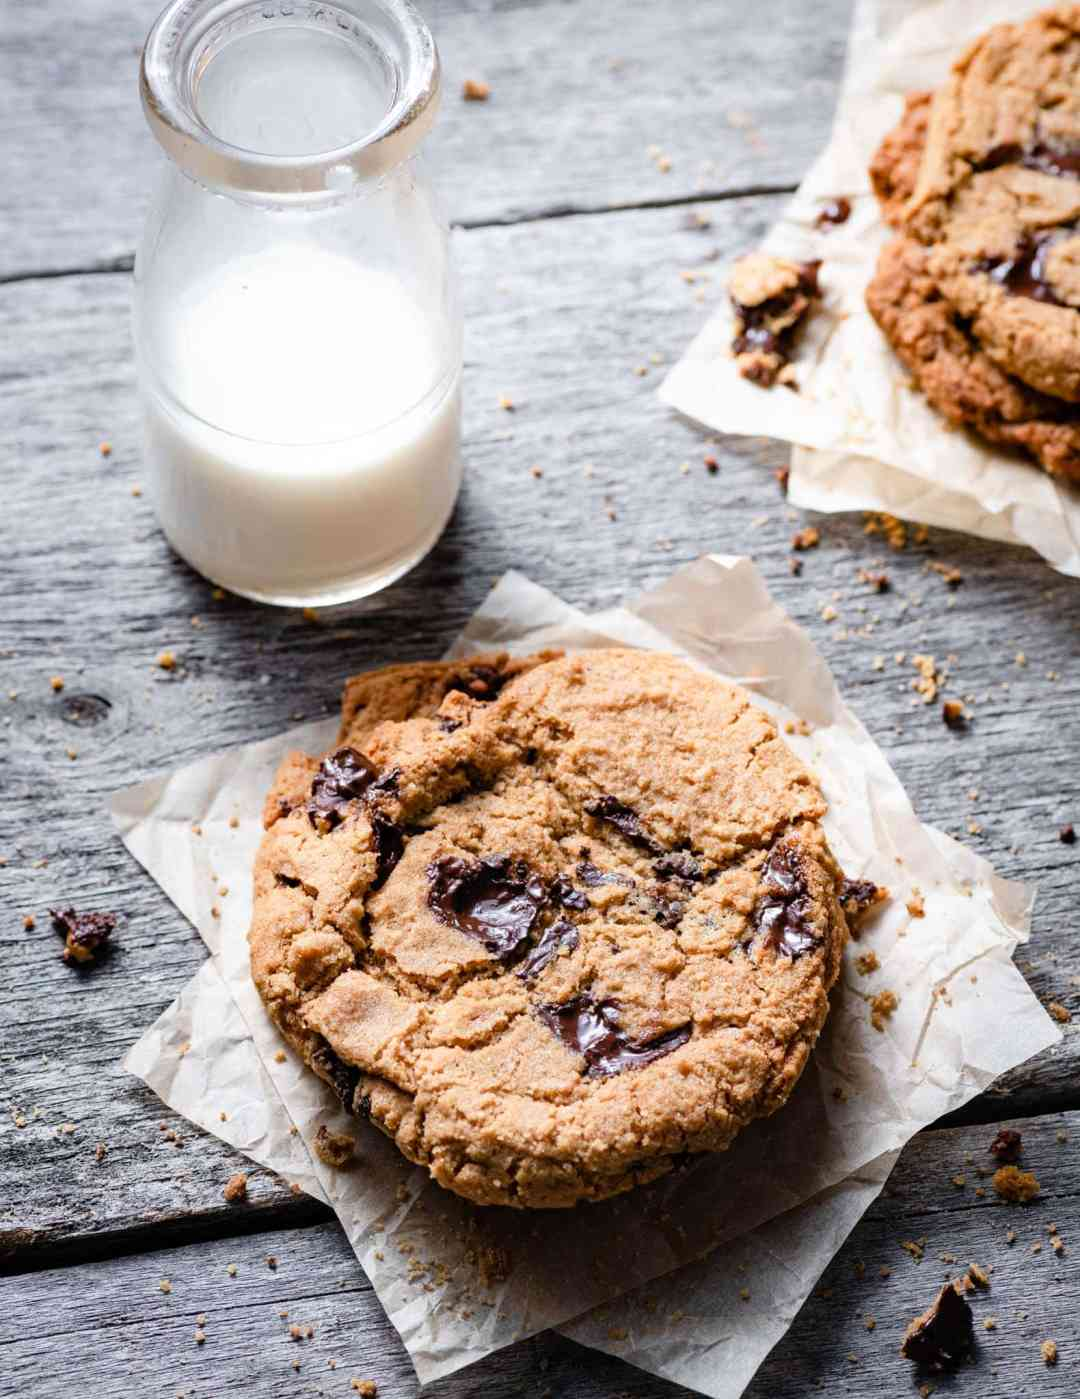 Chocolate Chip Cookies with glass of milk.